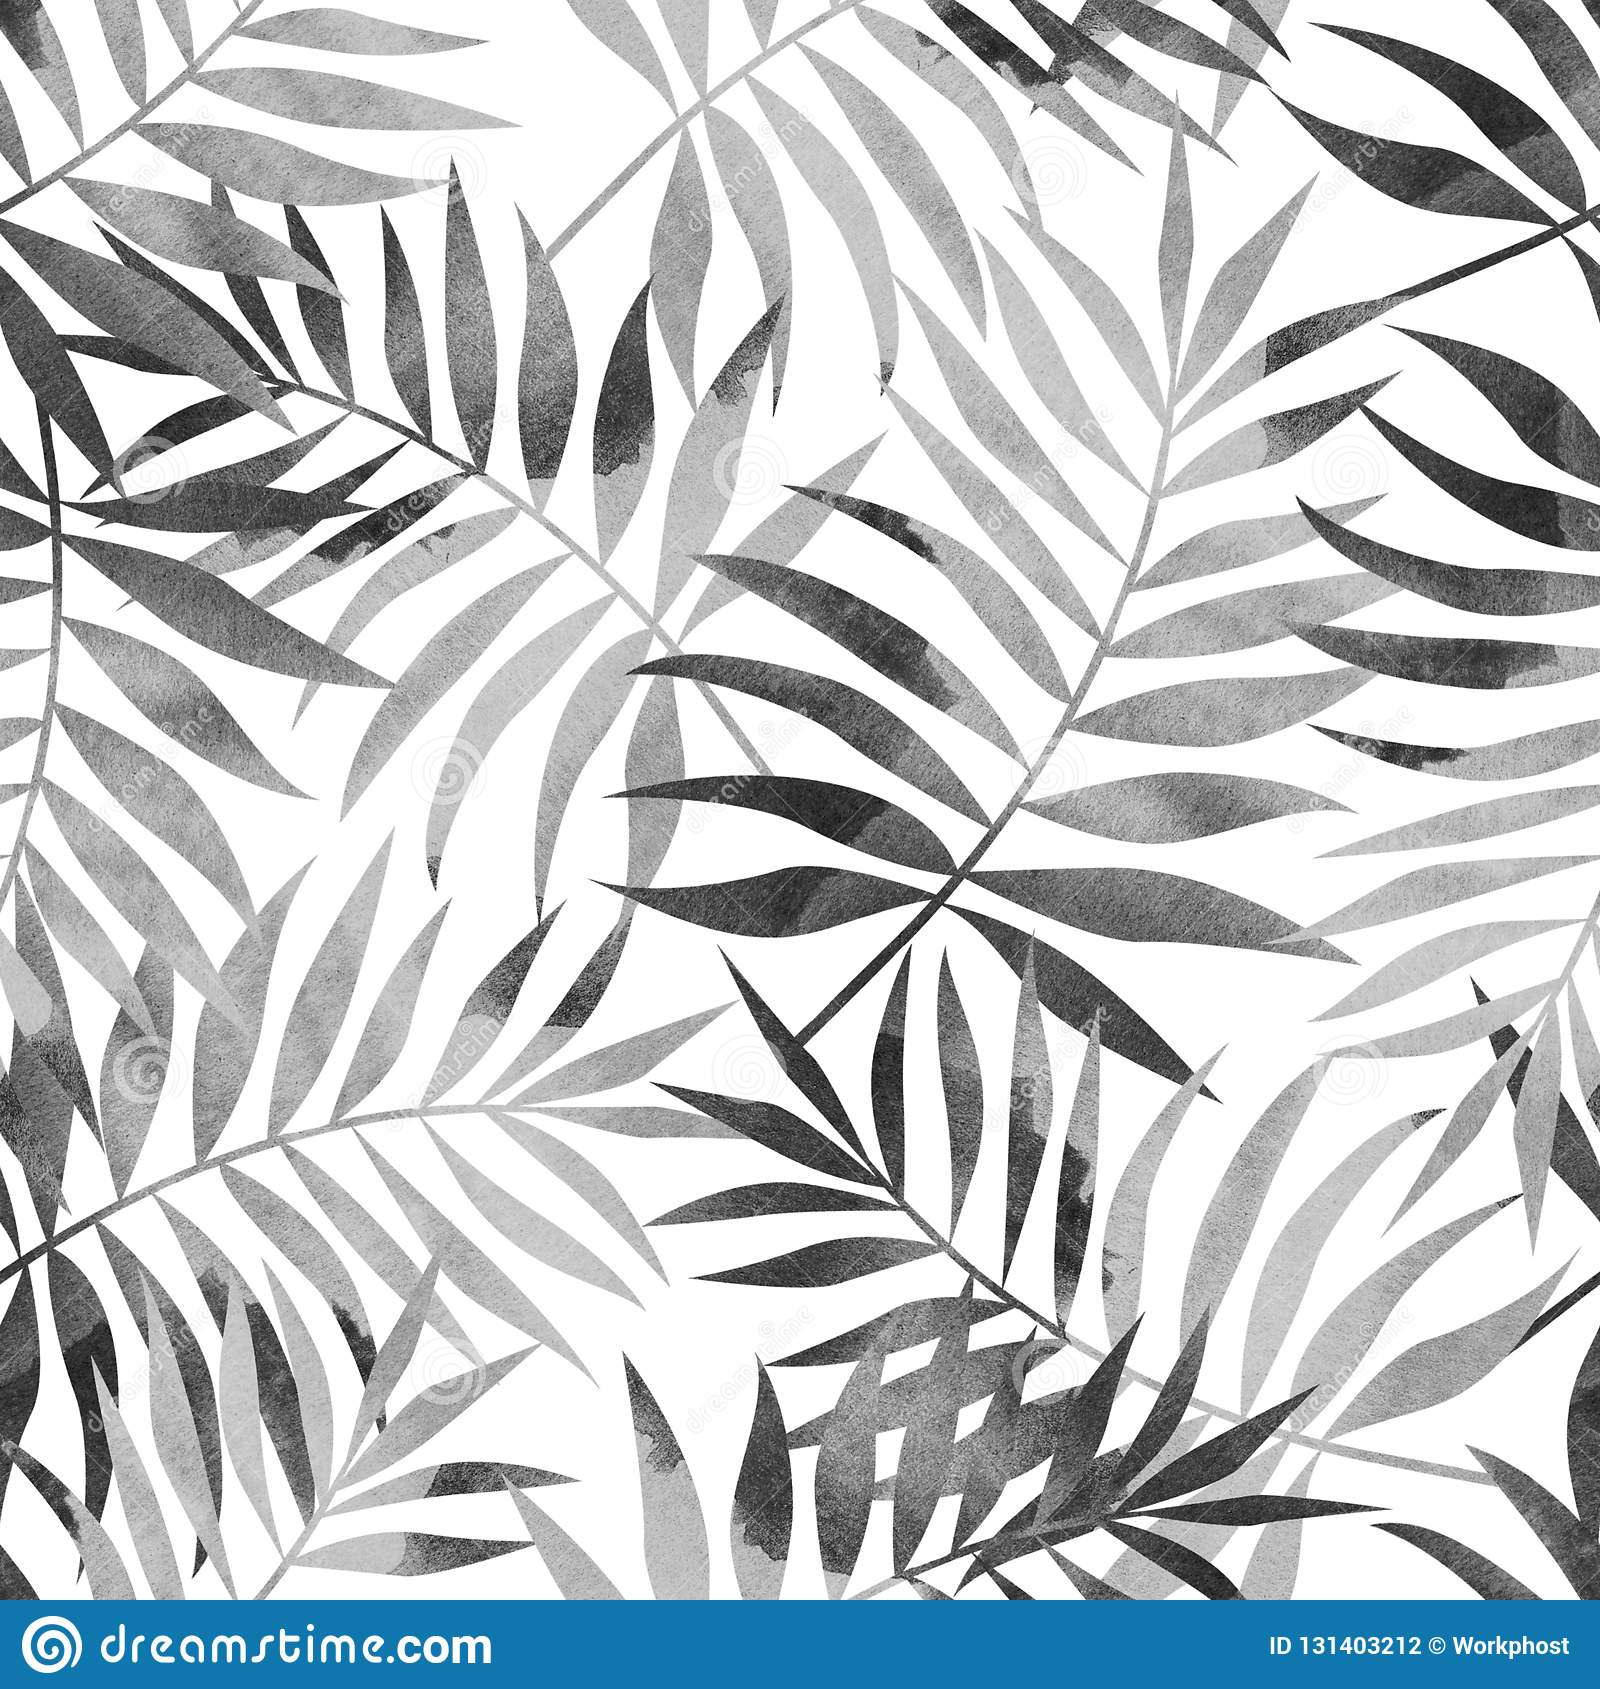 Seamless pattern with tropical palm leaves on white background. Stylish illustration